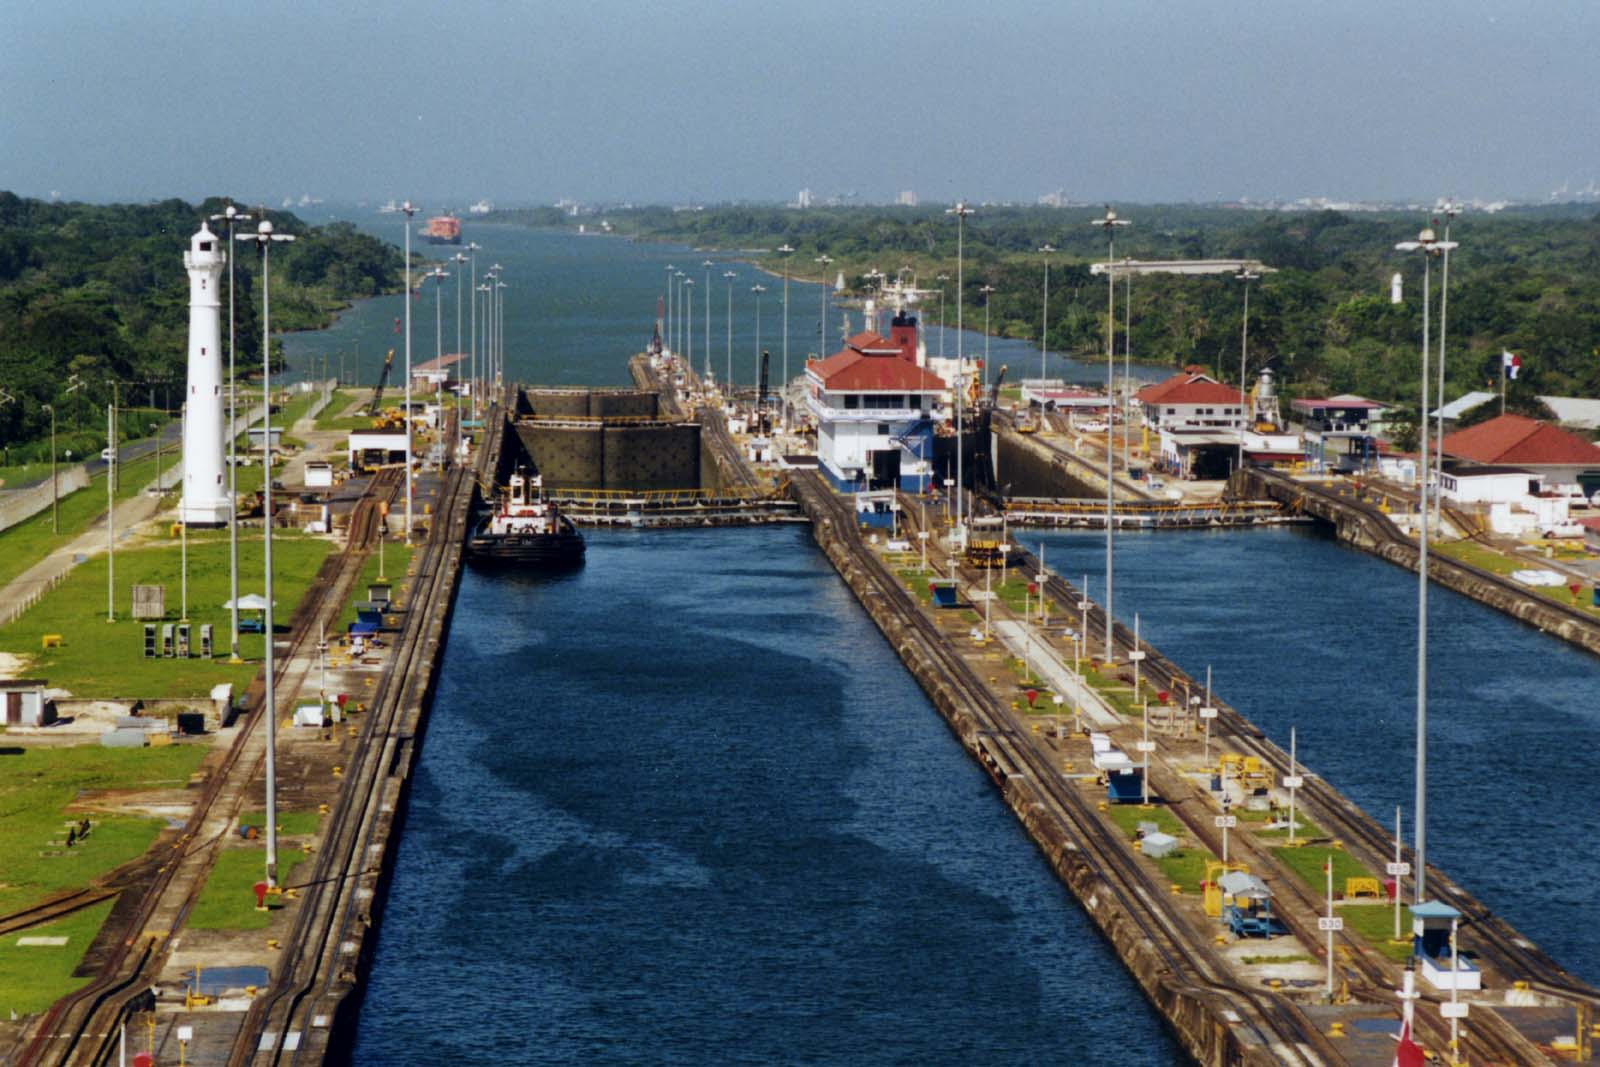 File:Panama Canal Gatun Locks.jpg - Wikimedia Commons